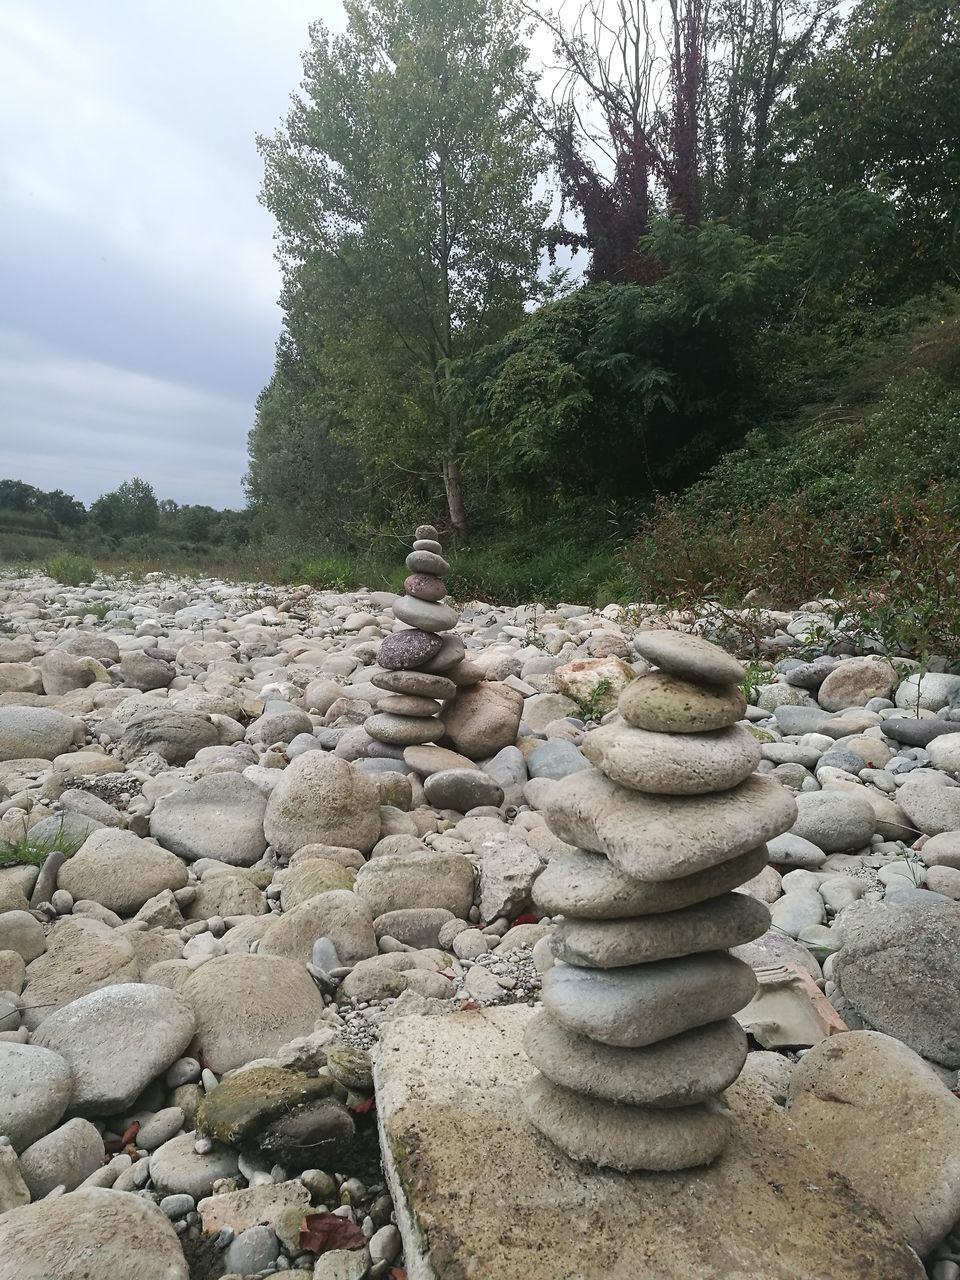 tree, stack, rock - object, nature, day, tranquility, tranquil scene, balance, outdoors, pebble, no people, beauty in nature, landscape, scenics, sky, water